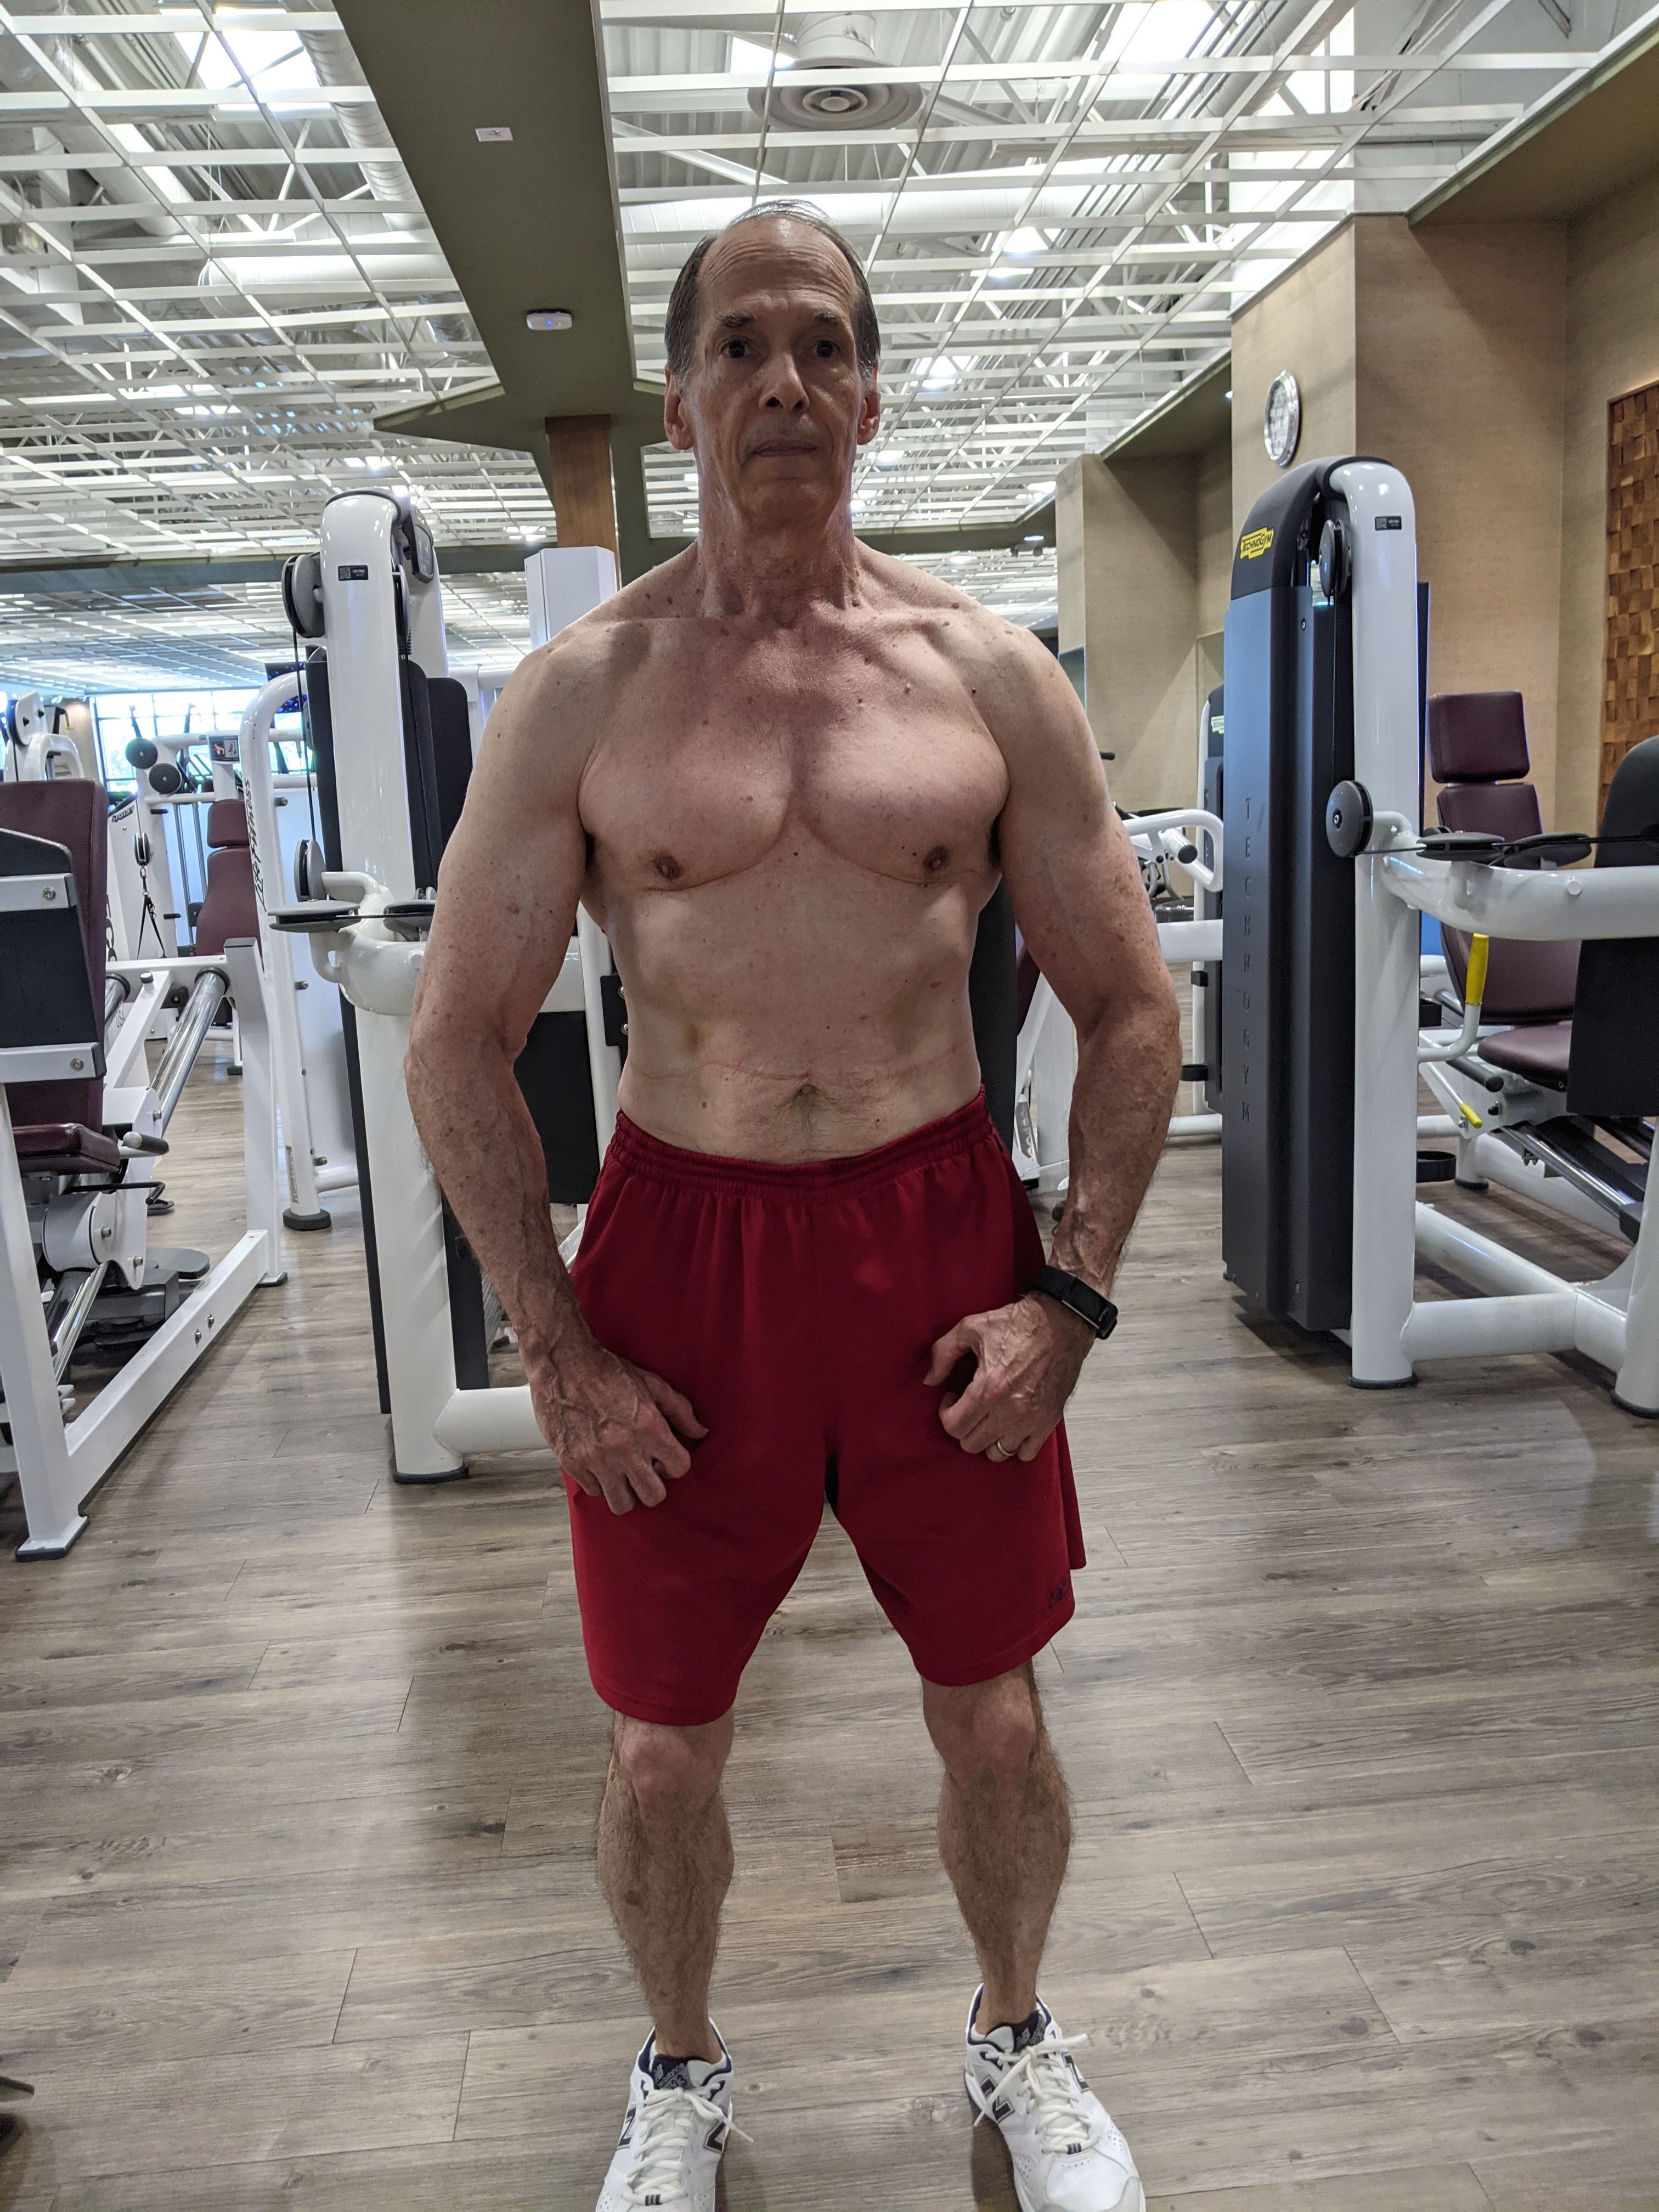 The Workout and Diet I Used to Build Muscle and Get Ripped at 63 Years Old